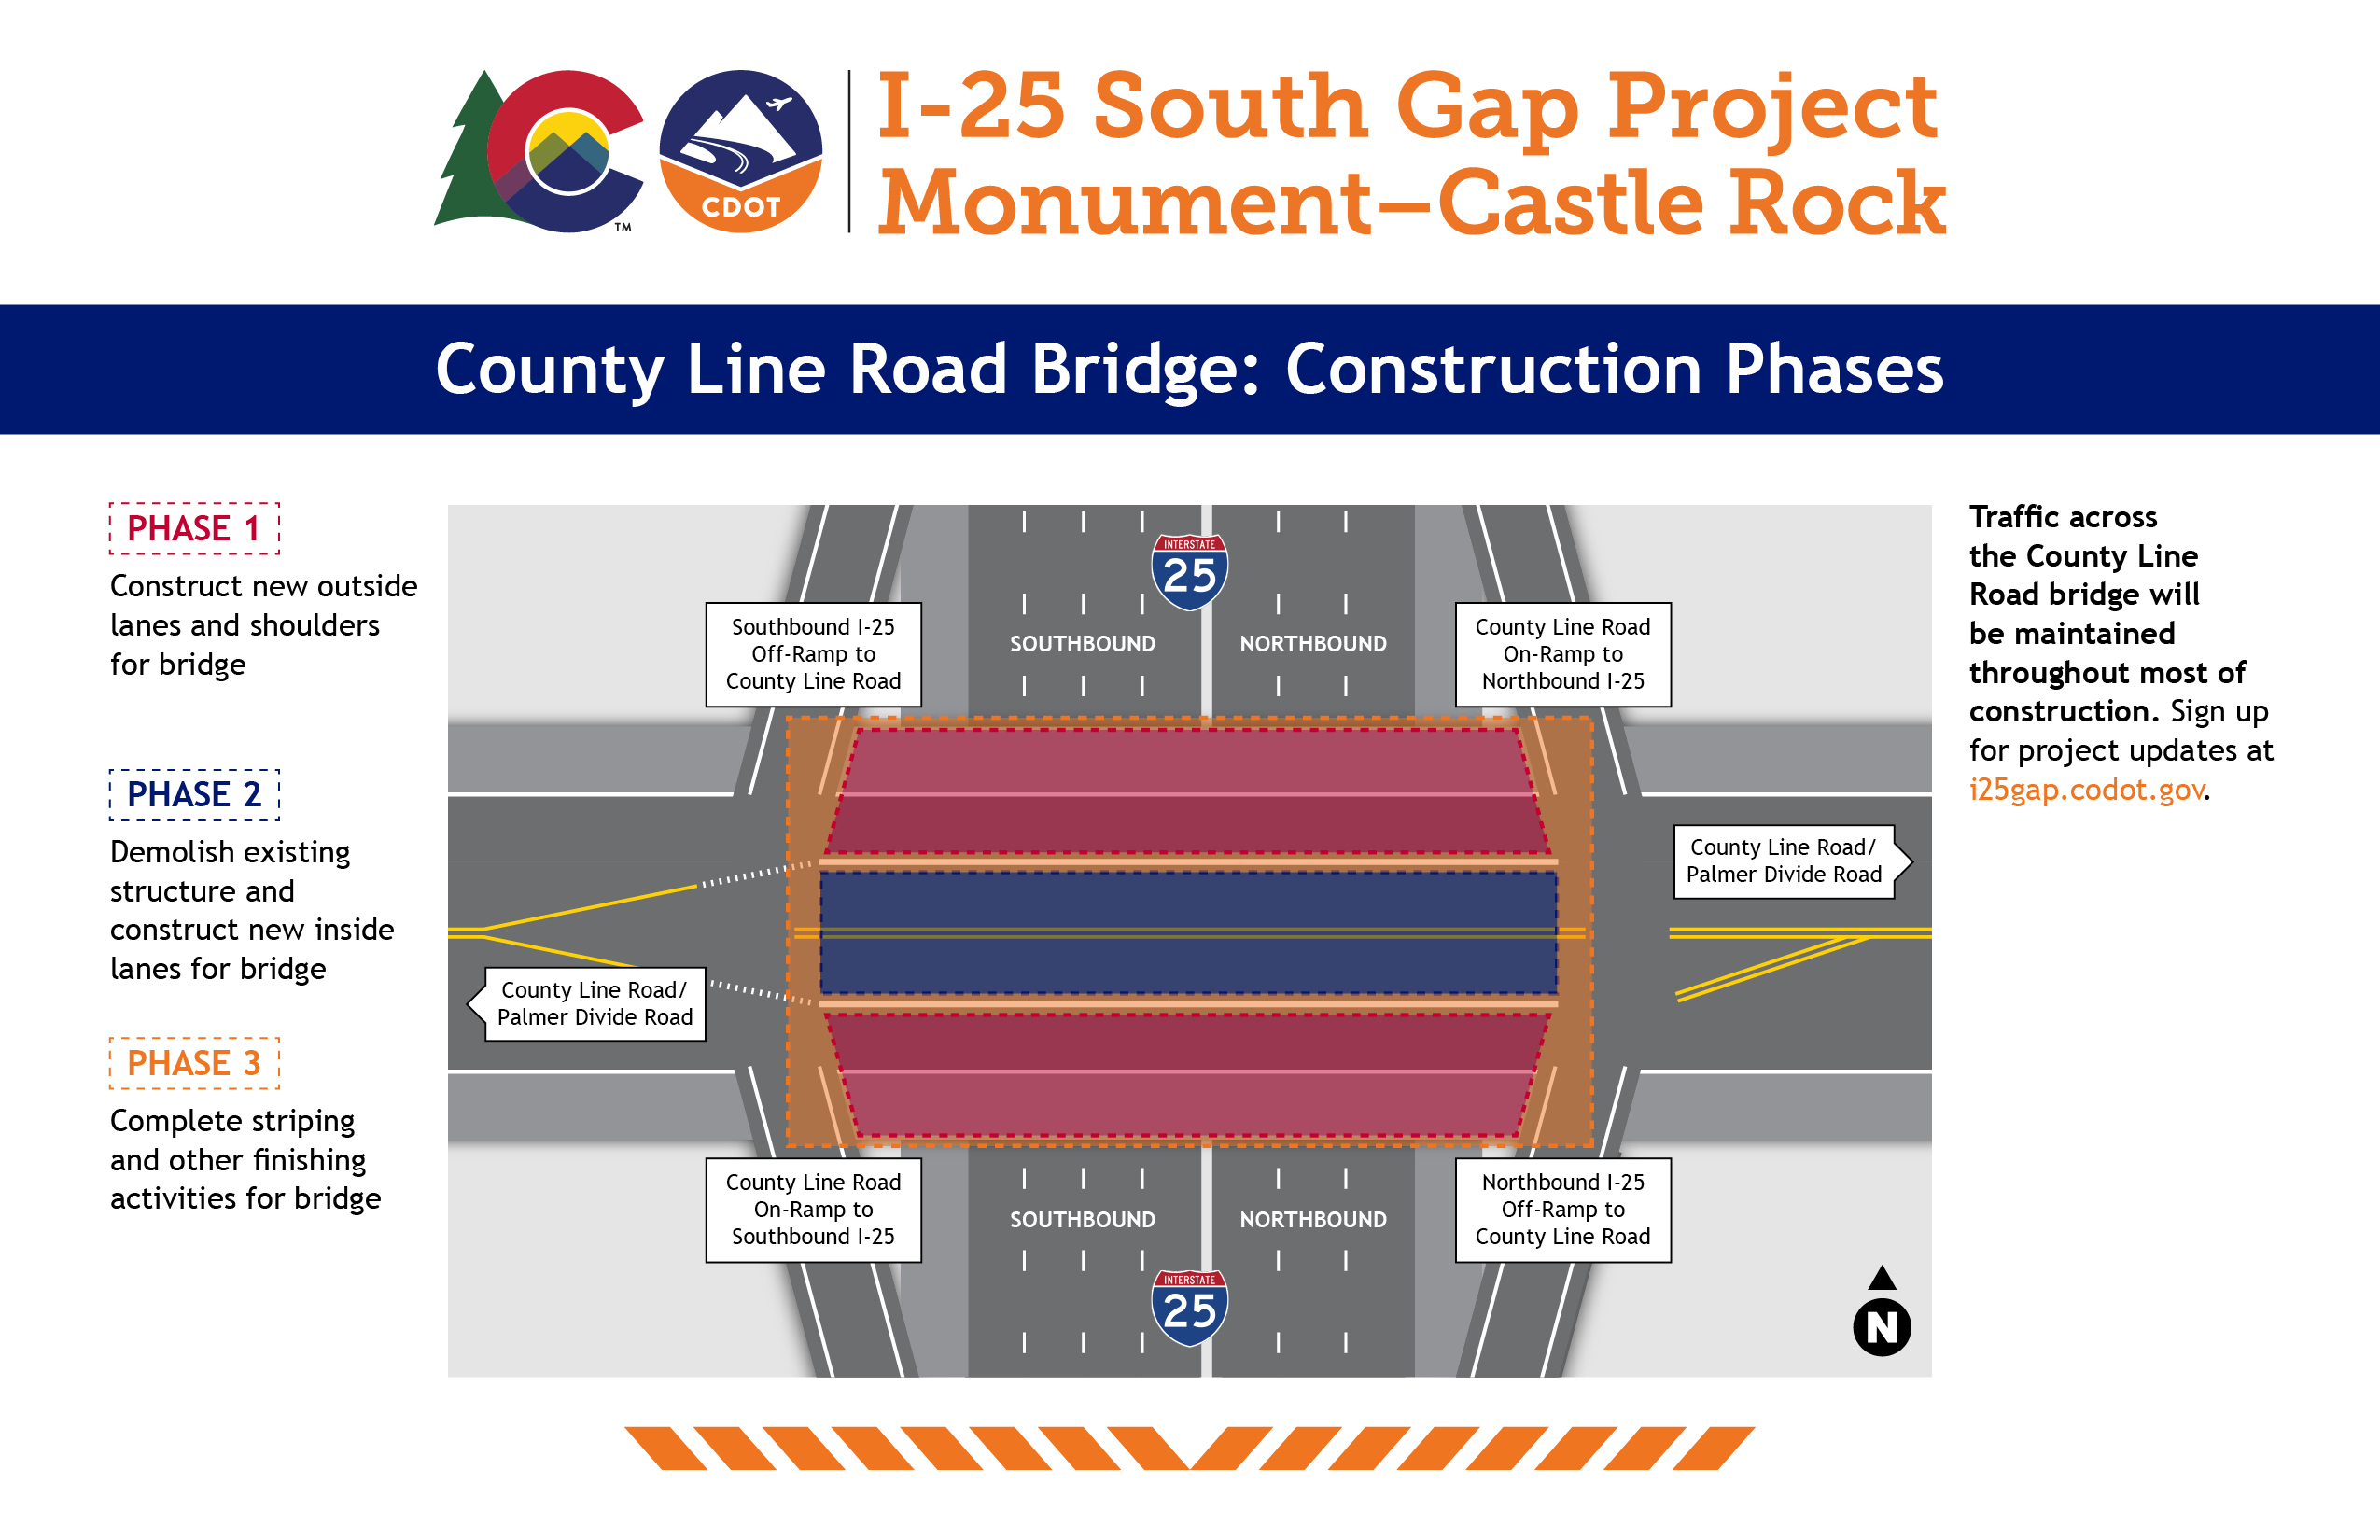 Display Board - County Line Road Bridge Construction Phases